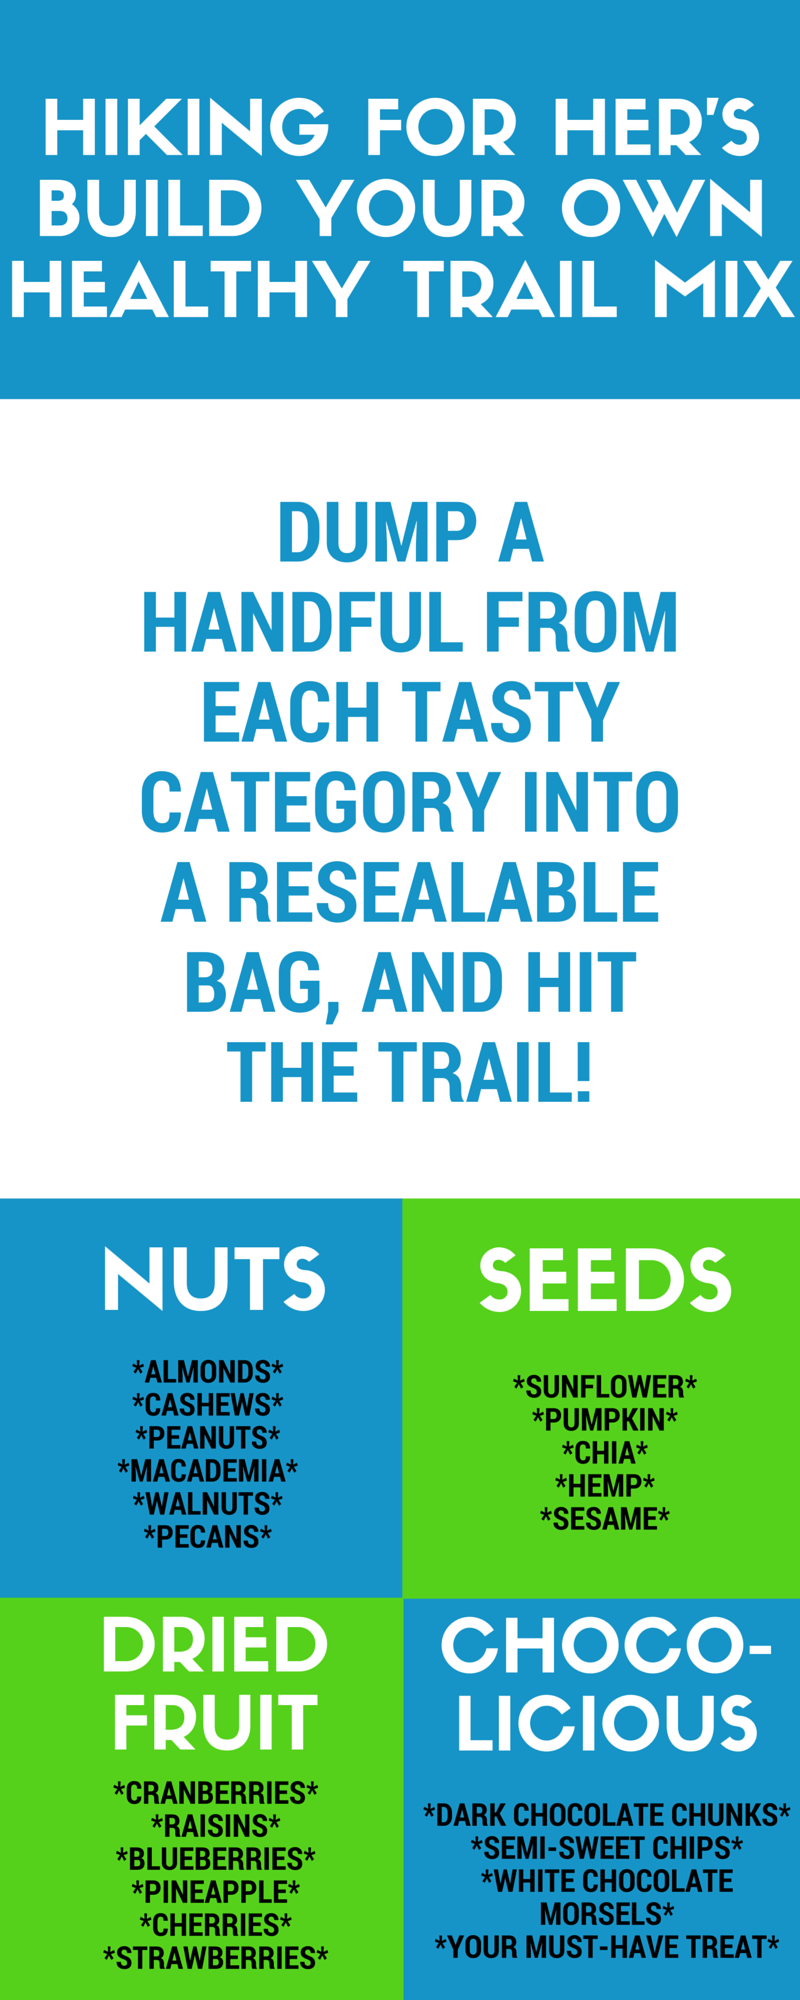 Trail snacks don't have to be boring. Mix up your own personal blend of delicious hiking food! #hikingsnacks #trailfood #snacksforhikers #trailmix #hikinginfographic